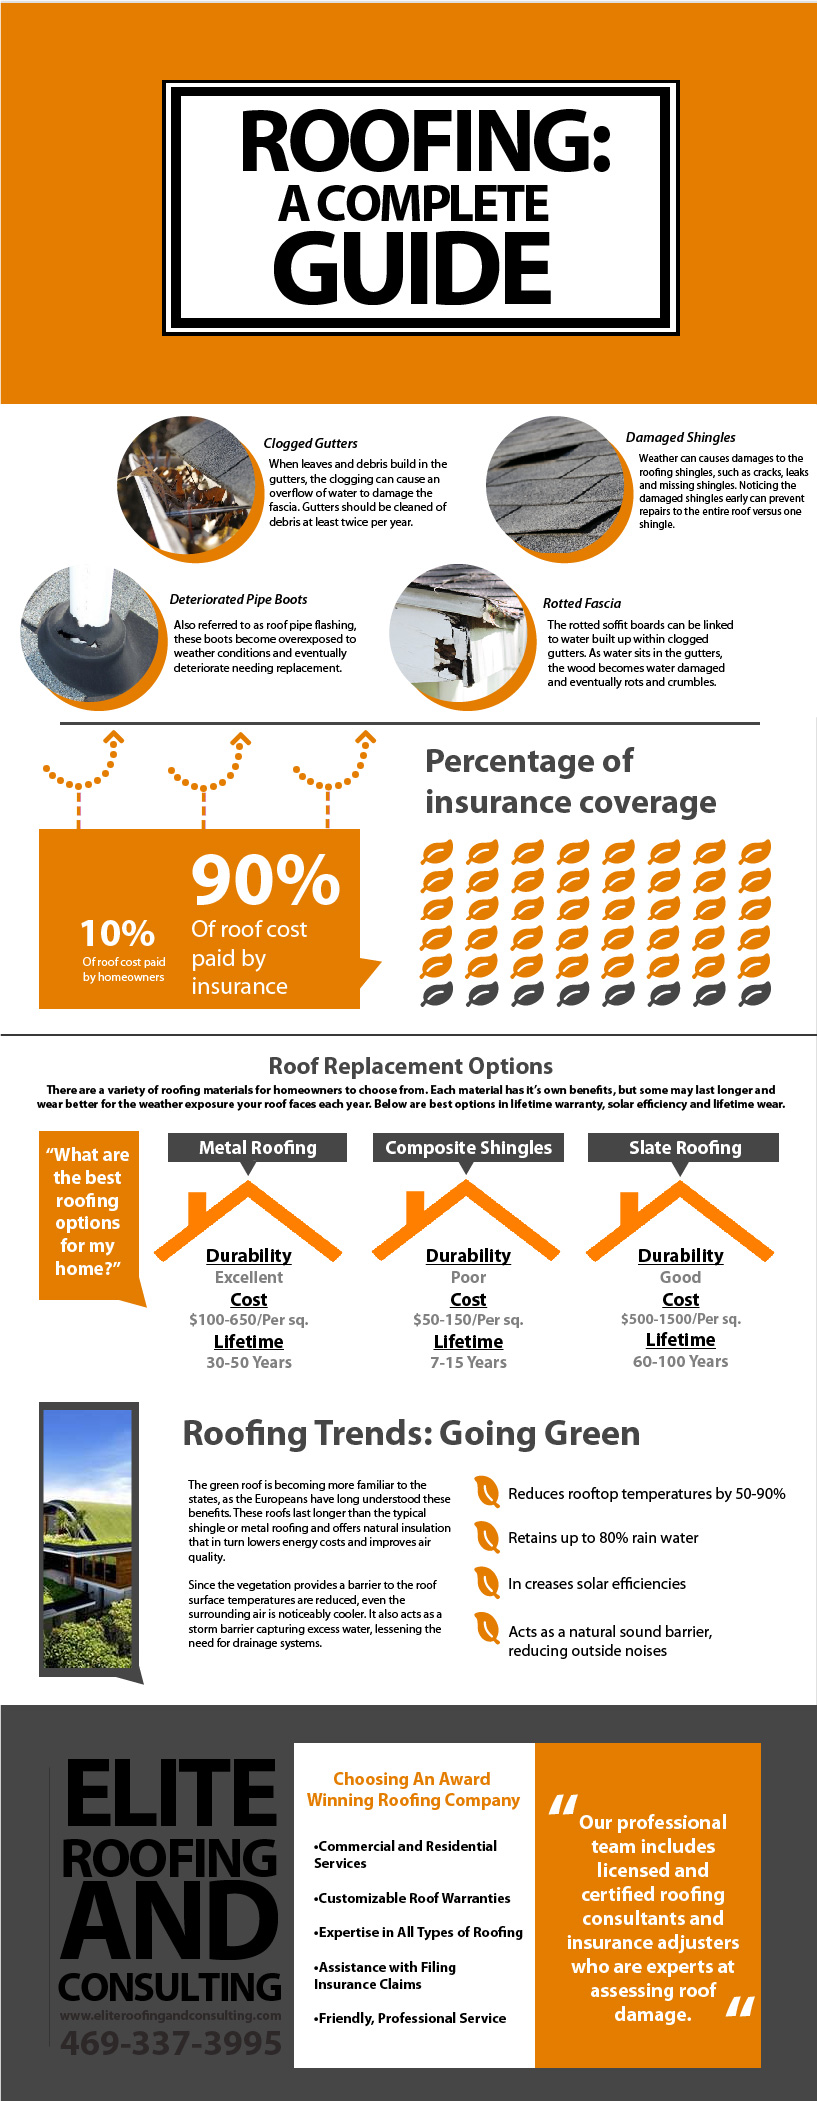 (Infographic) Roofing: A Complete Guide - Elite Roofing and Consulting